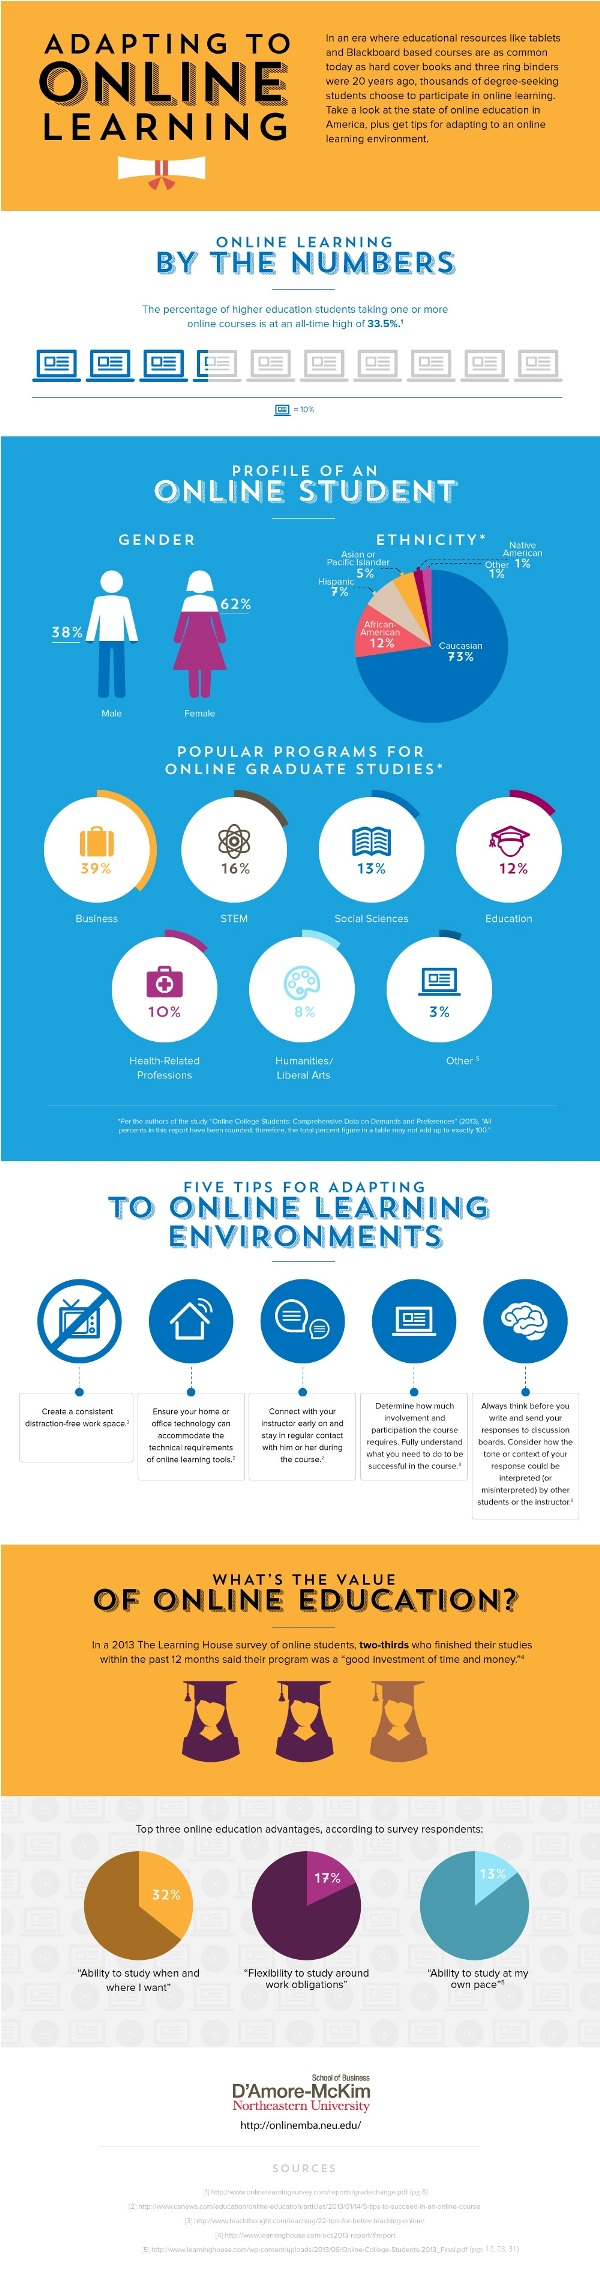 Adapting_to_Online_Learning